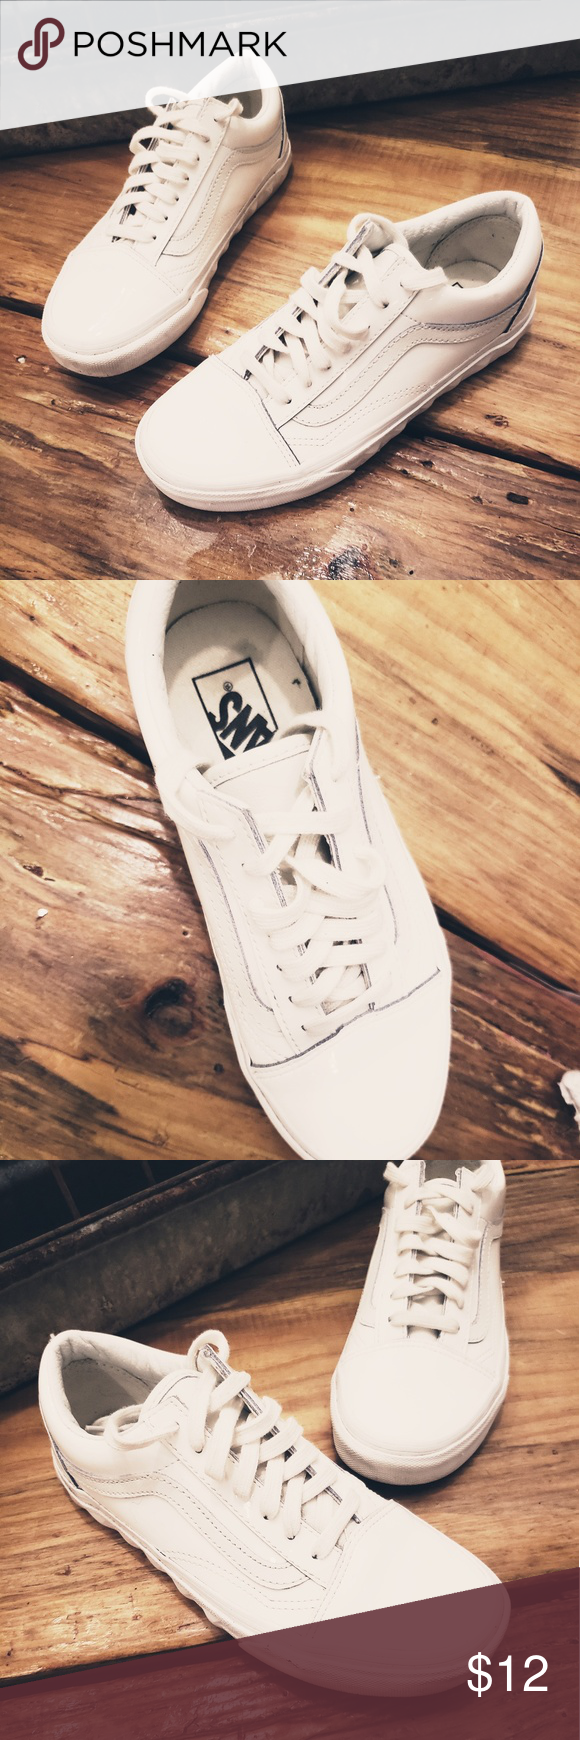 New! Plastic Vans New without tags Van's sneaker in white